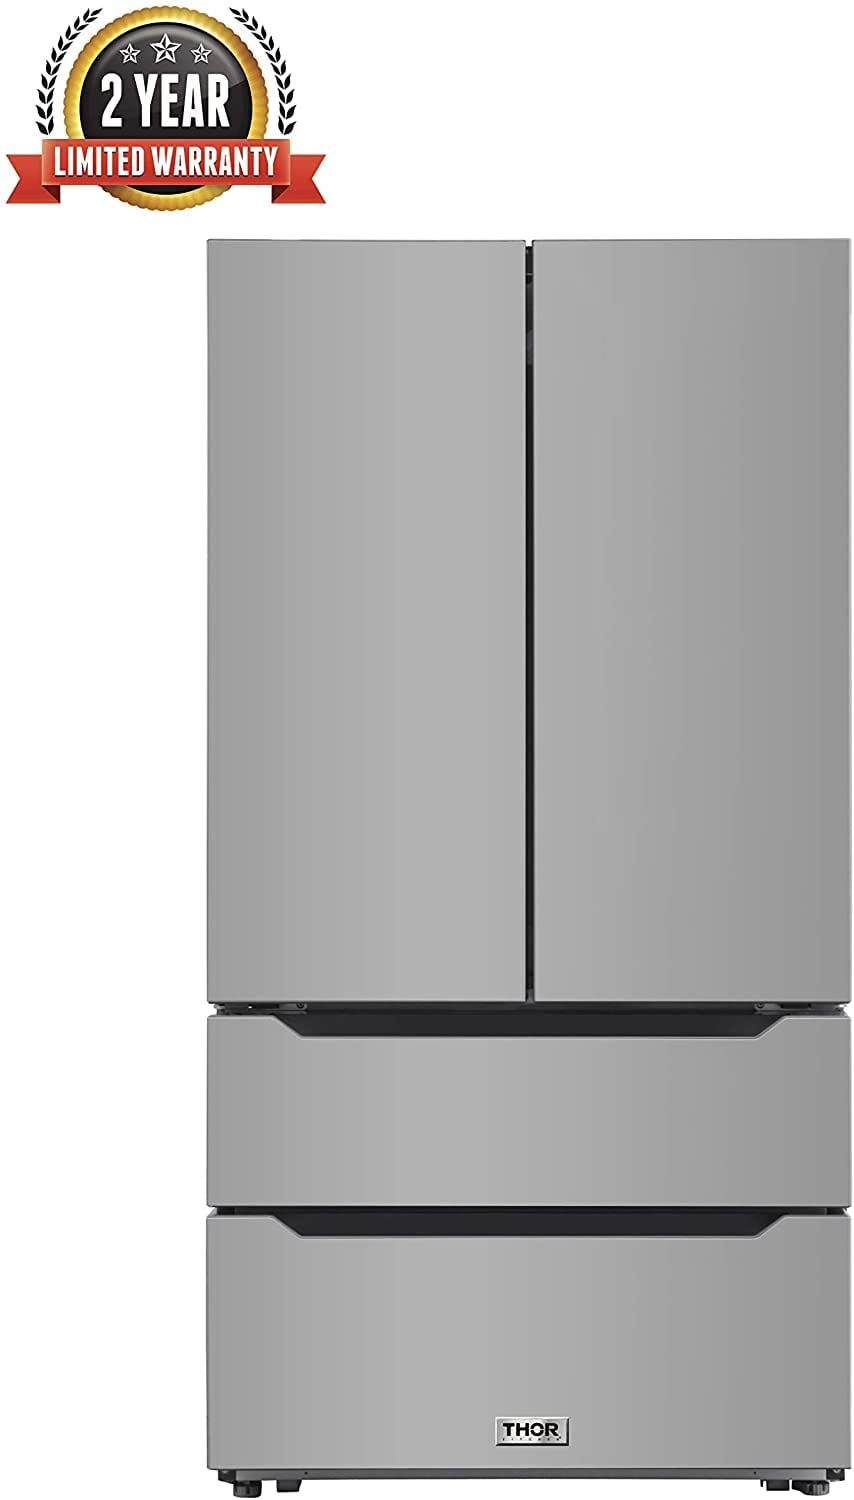 Thor Kitchen 36 Inch Wide 22.5 cu.ft Stainless Steel Refrigerator